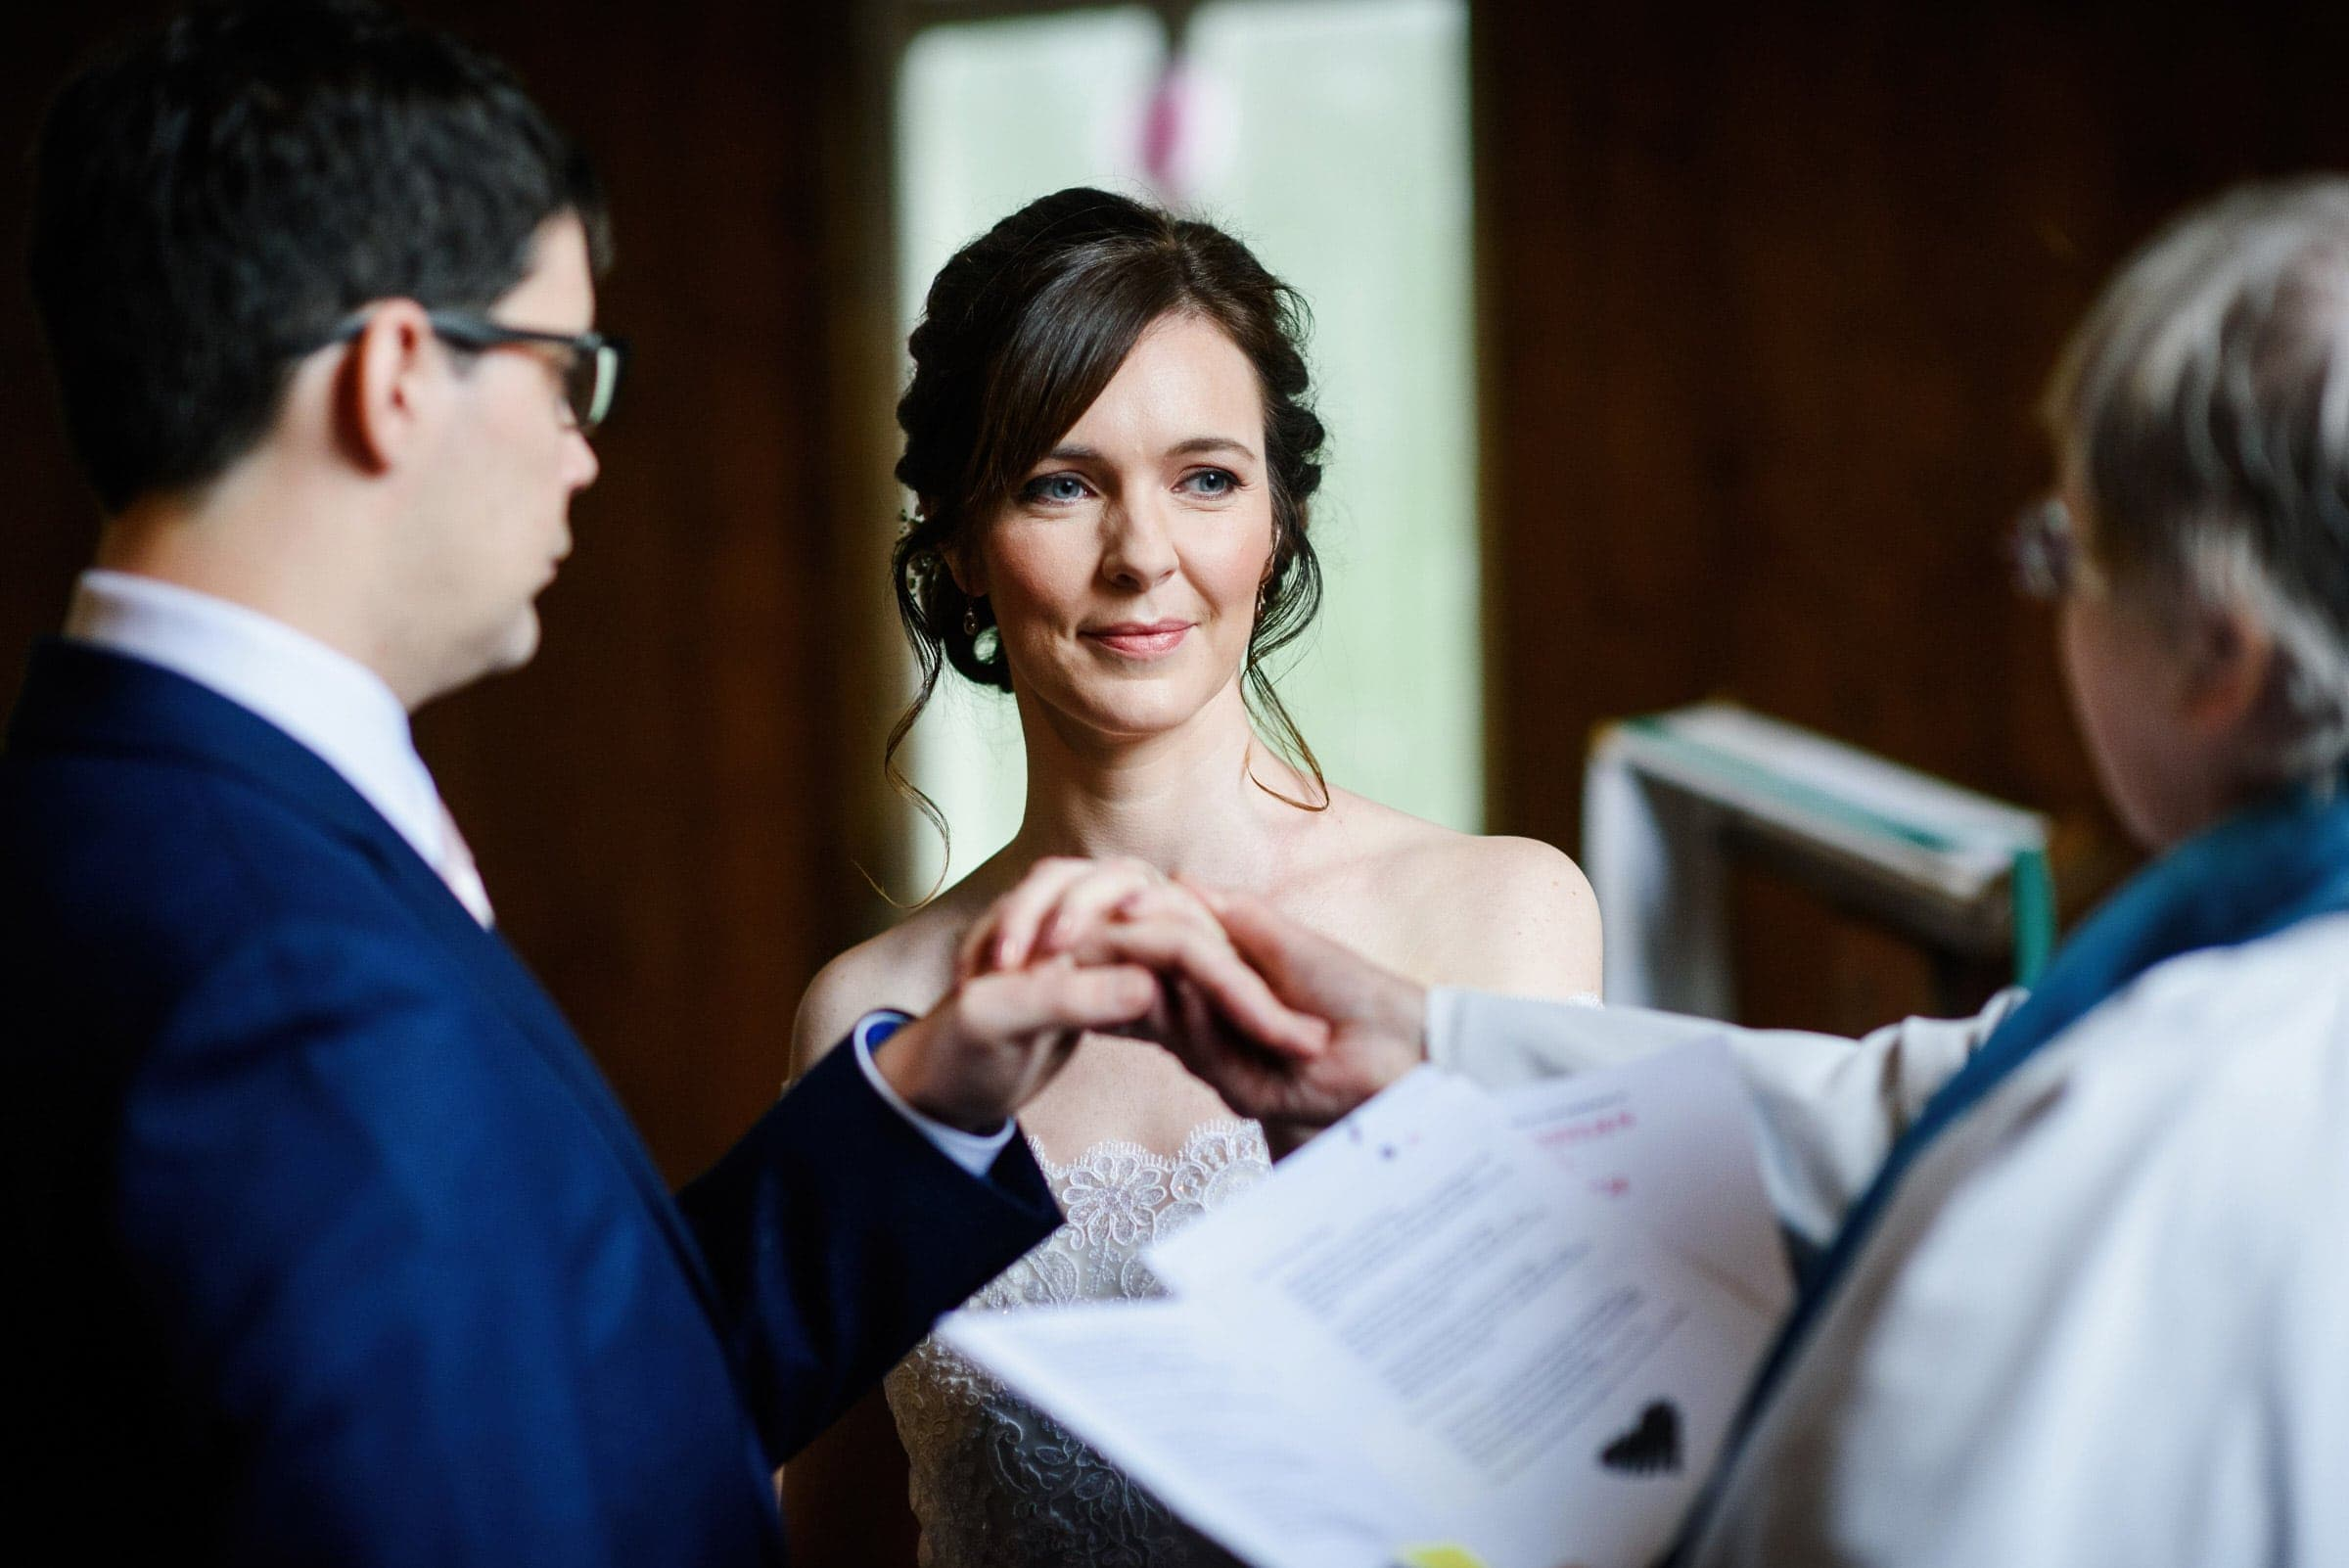 Bride and groom blessed by vicar during small wedding ceremony